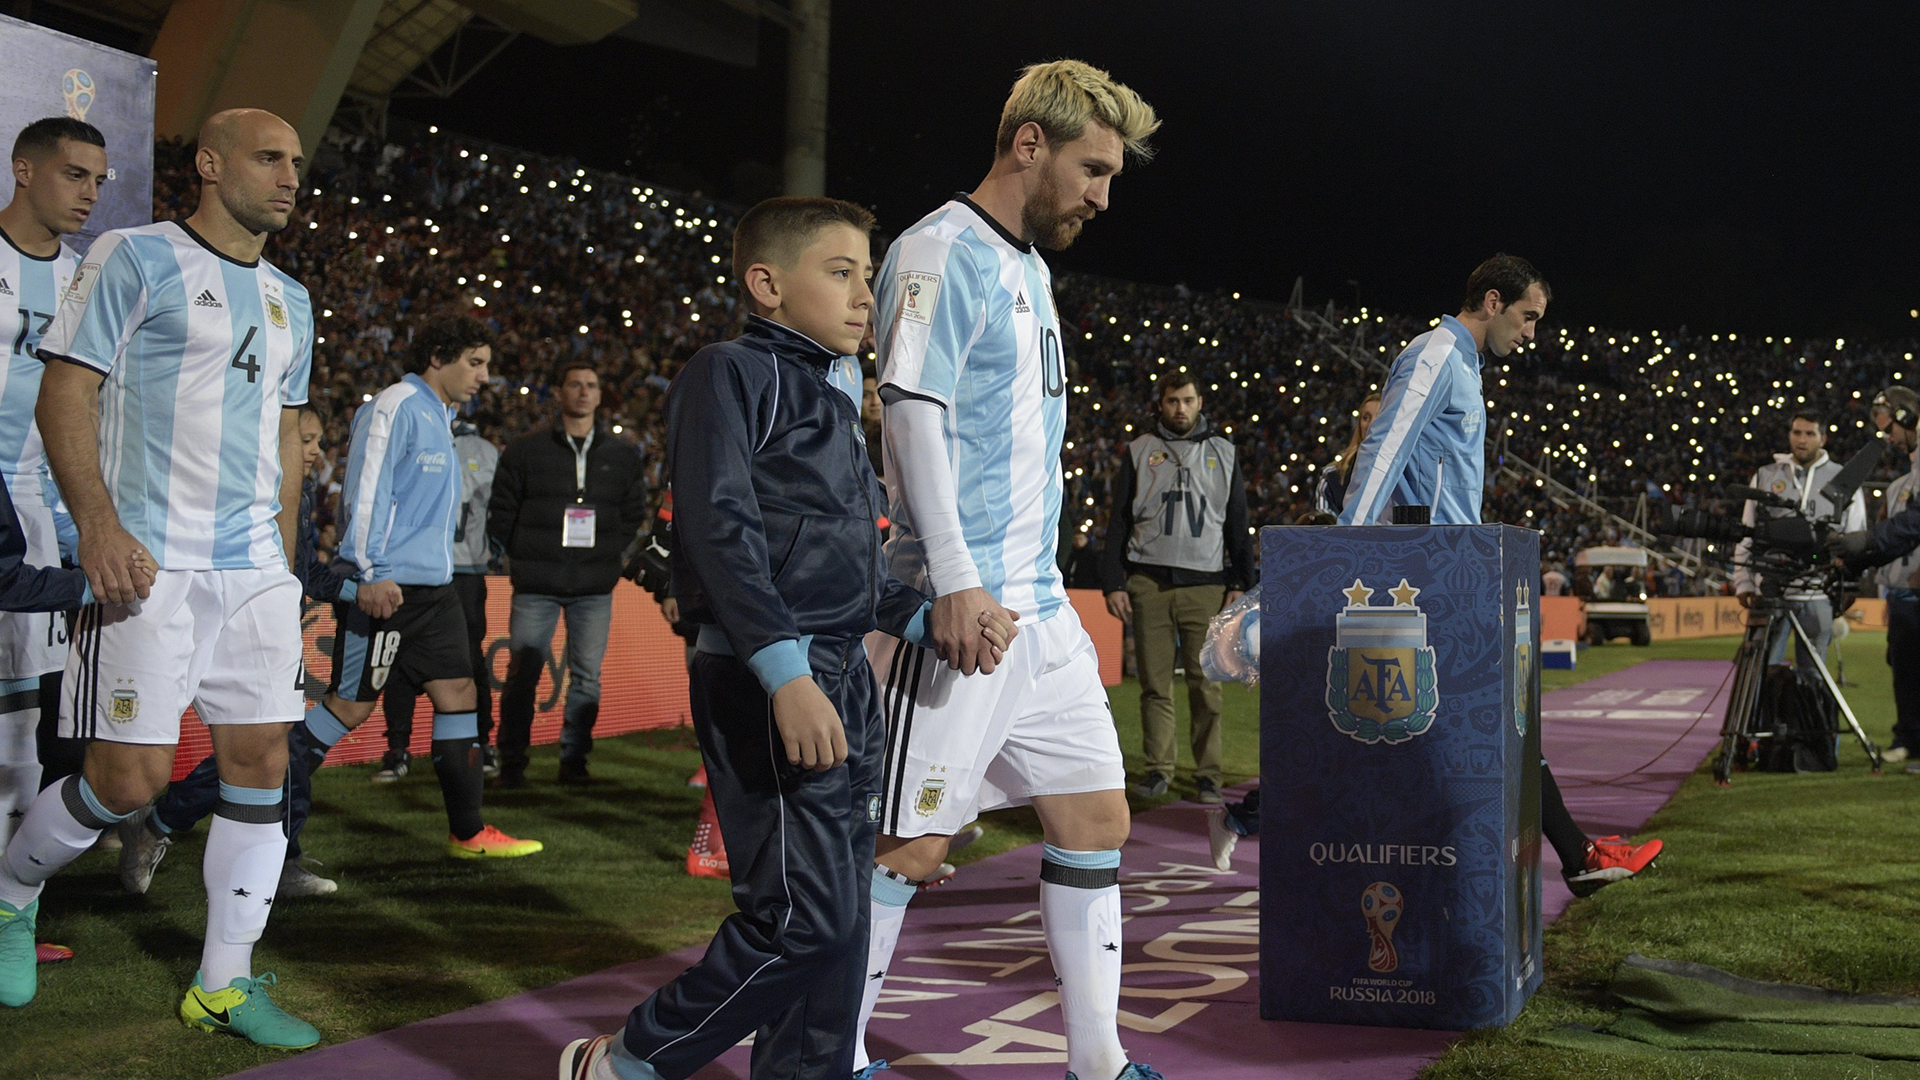 Argentina's Lionel Messi (C) enters the field before their Russia 2018 World Cup qualifier football match against Uruguay in Mendoza, Argentina, on September 1, 2016. / AFP / JUAN MABROMATA        (Photo credit should read JUAN MABROMATA/AFP/Getty Images)